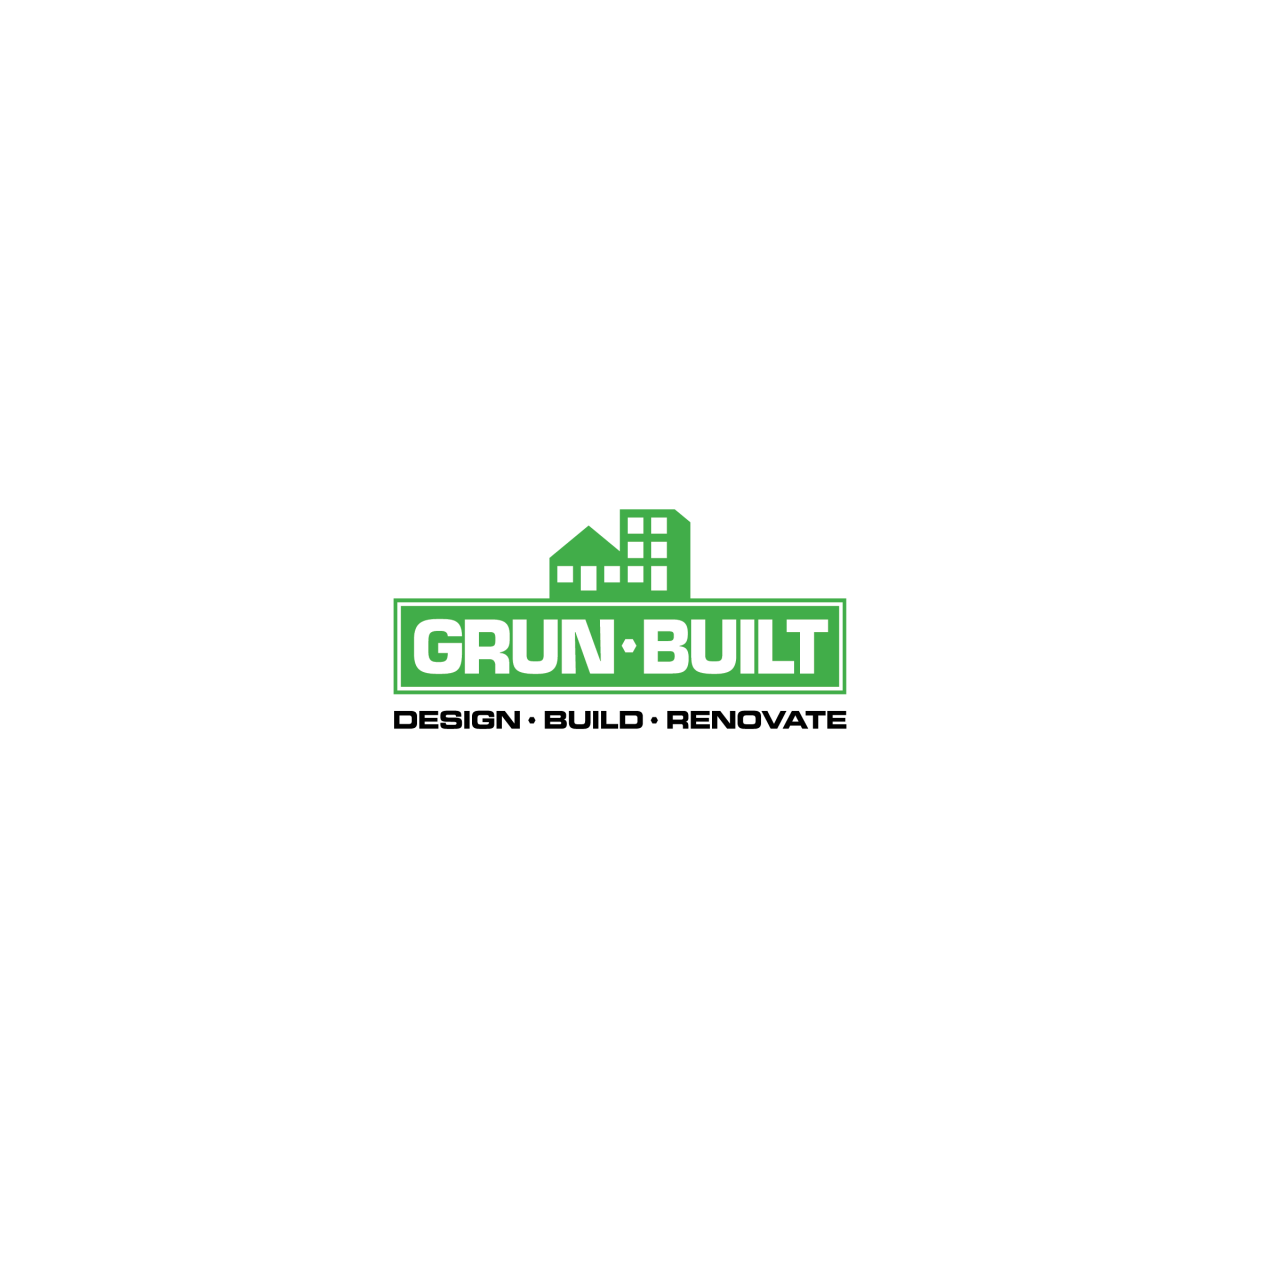 Image of Grun Built logo color alternate